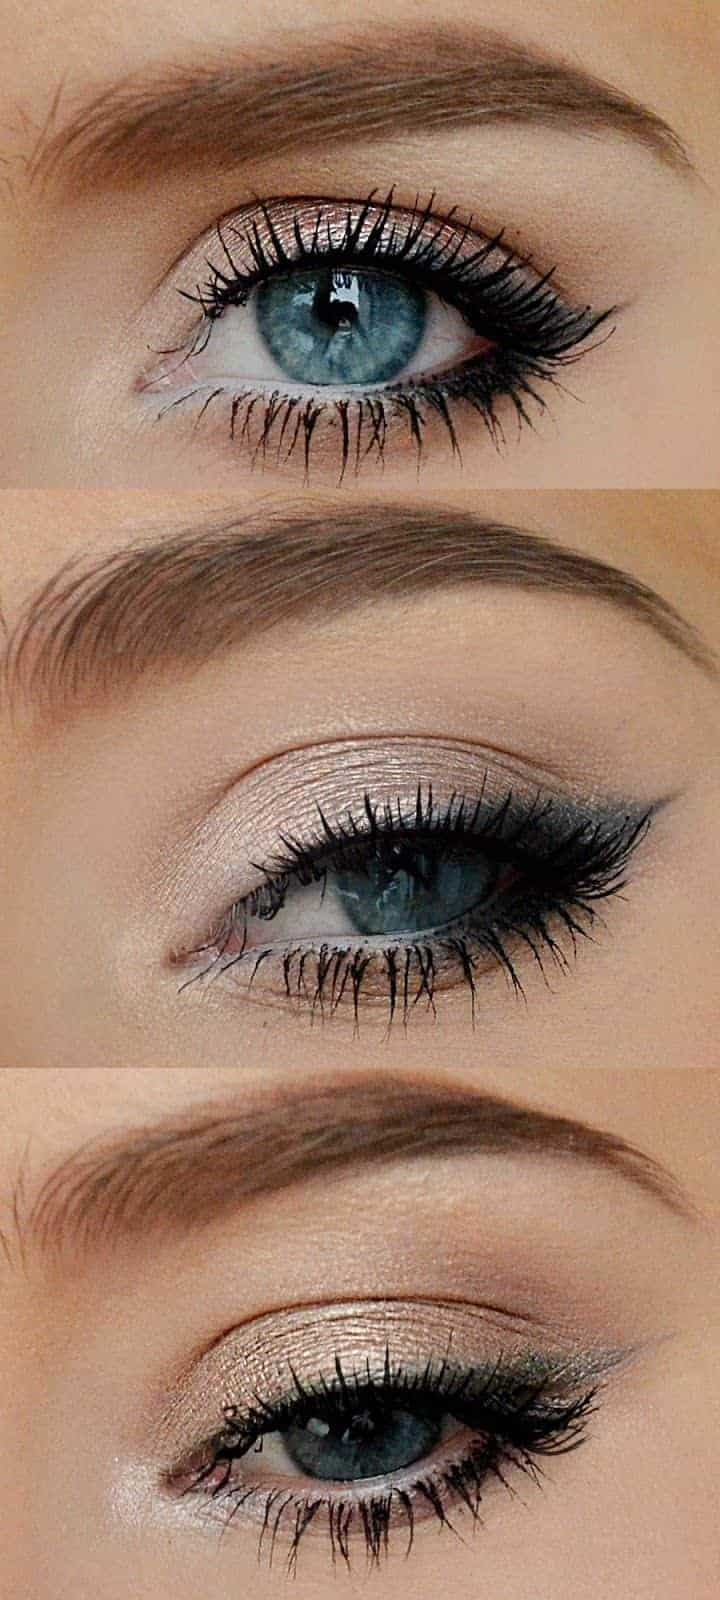 Natural look make up tutorial images any tutorial examples natural autumn makeup women styles hairstyles makeup tutorials natural autumn makeup baditri images baditri Image collections